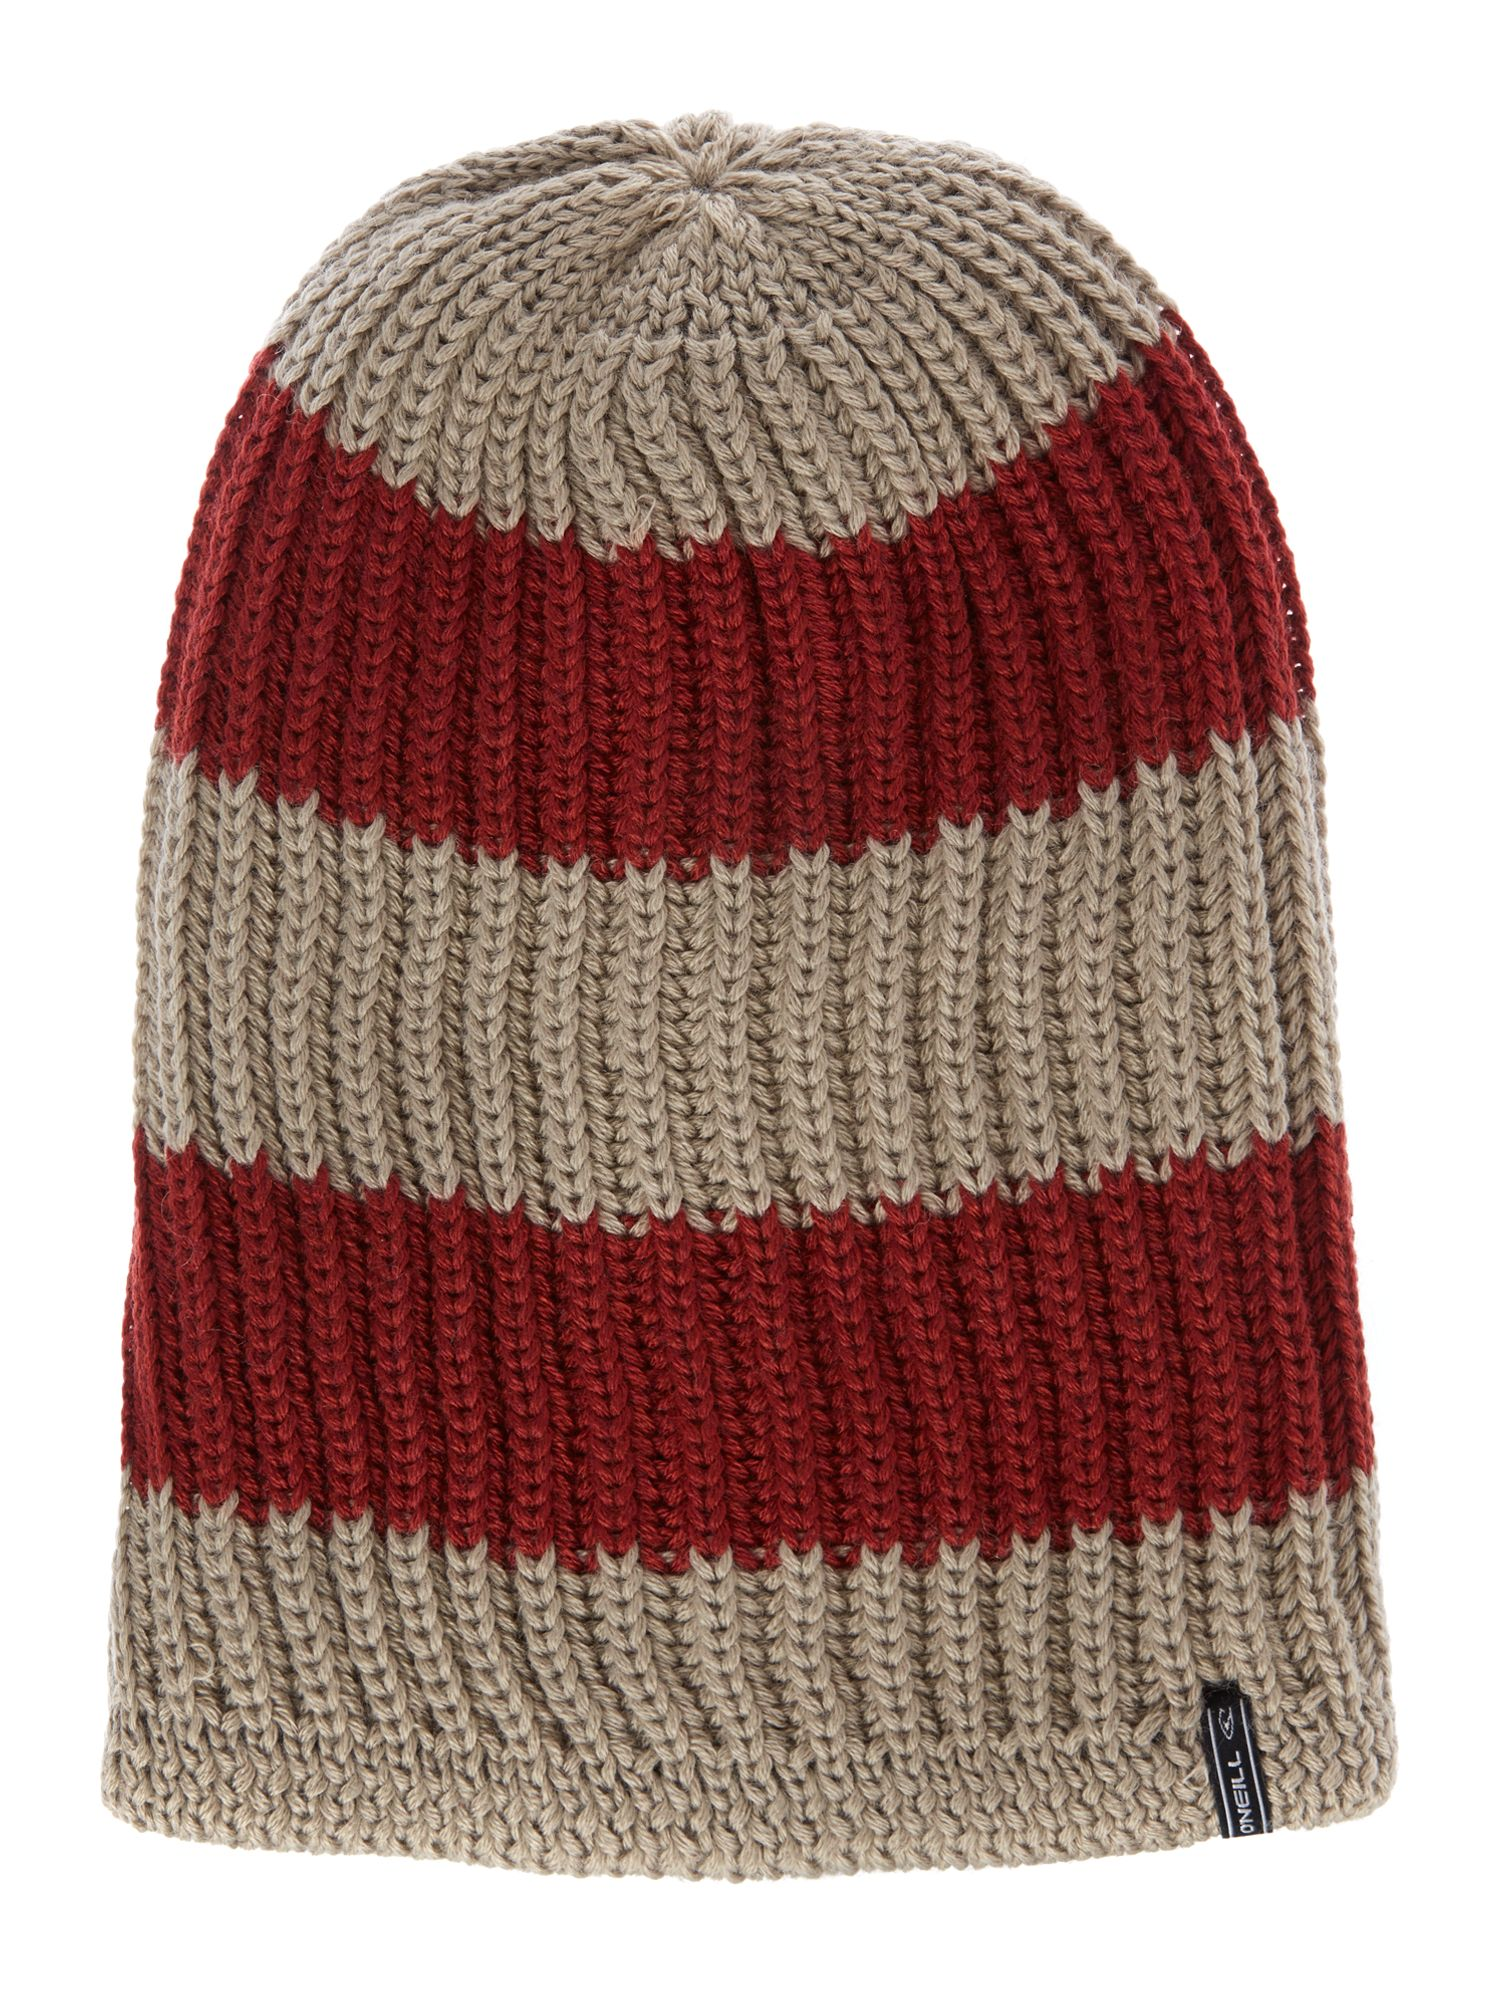 Stripe reversible beanie hat